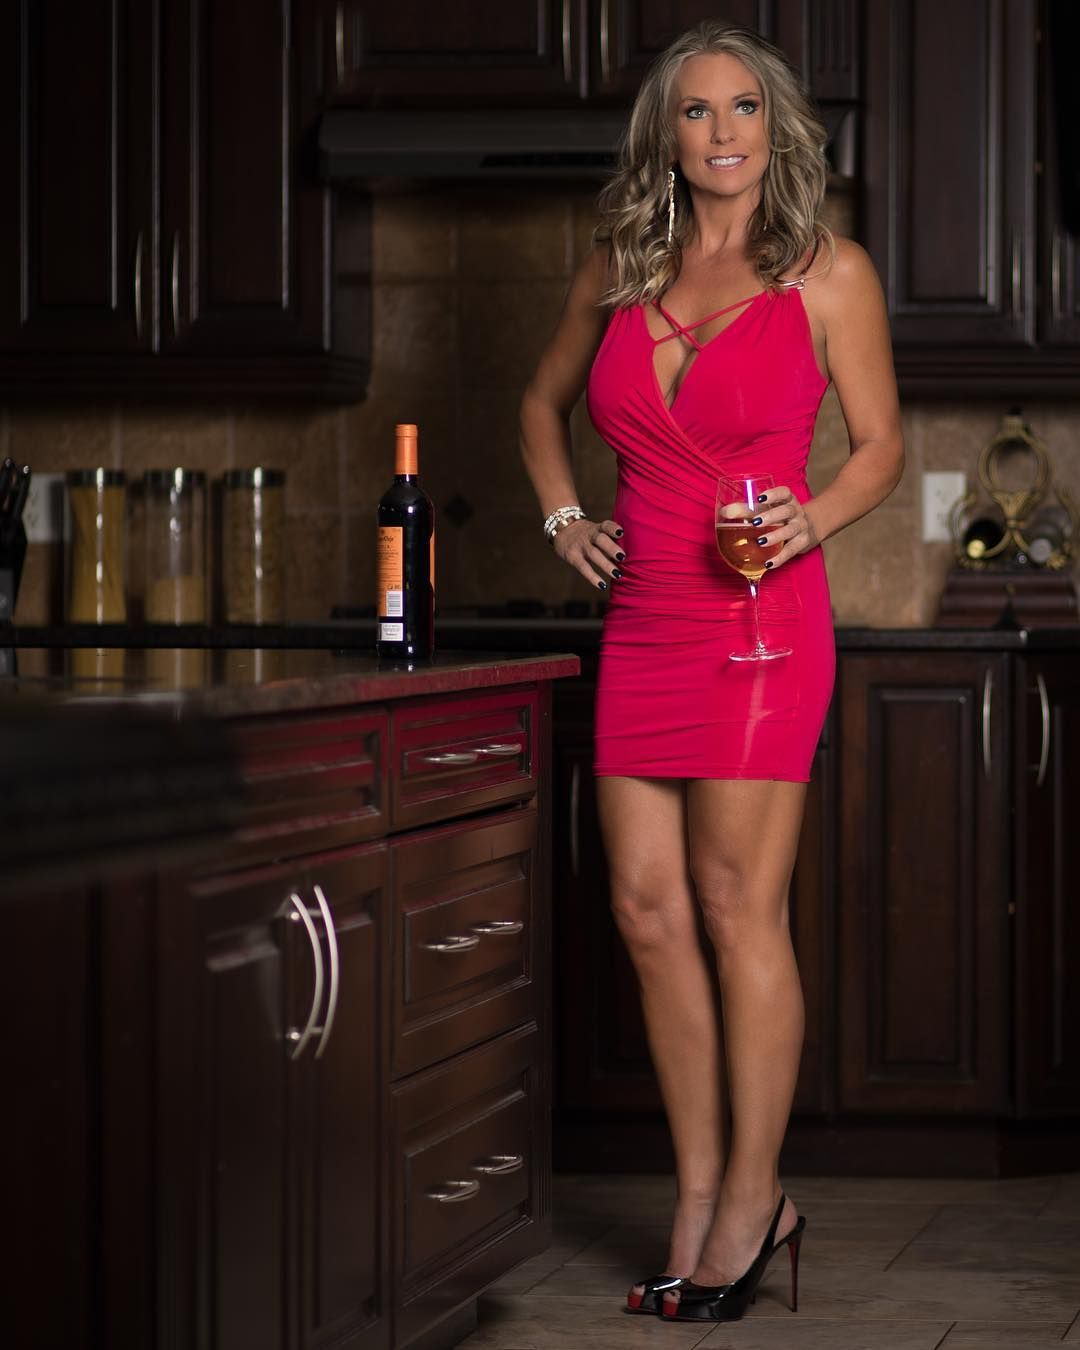 saturday night!! cheers to the weekend! . . . . . #picoftheday #milf